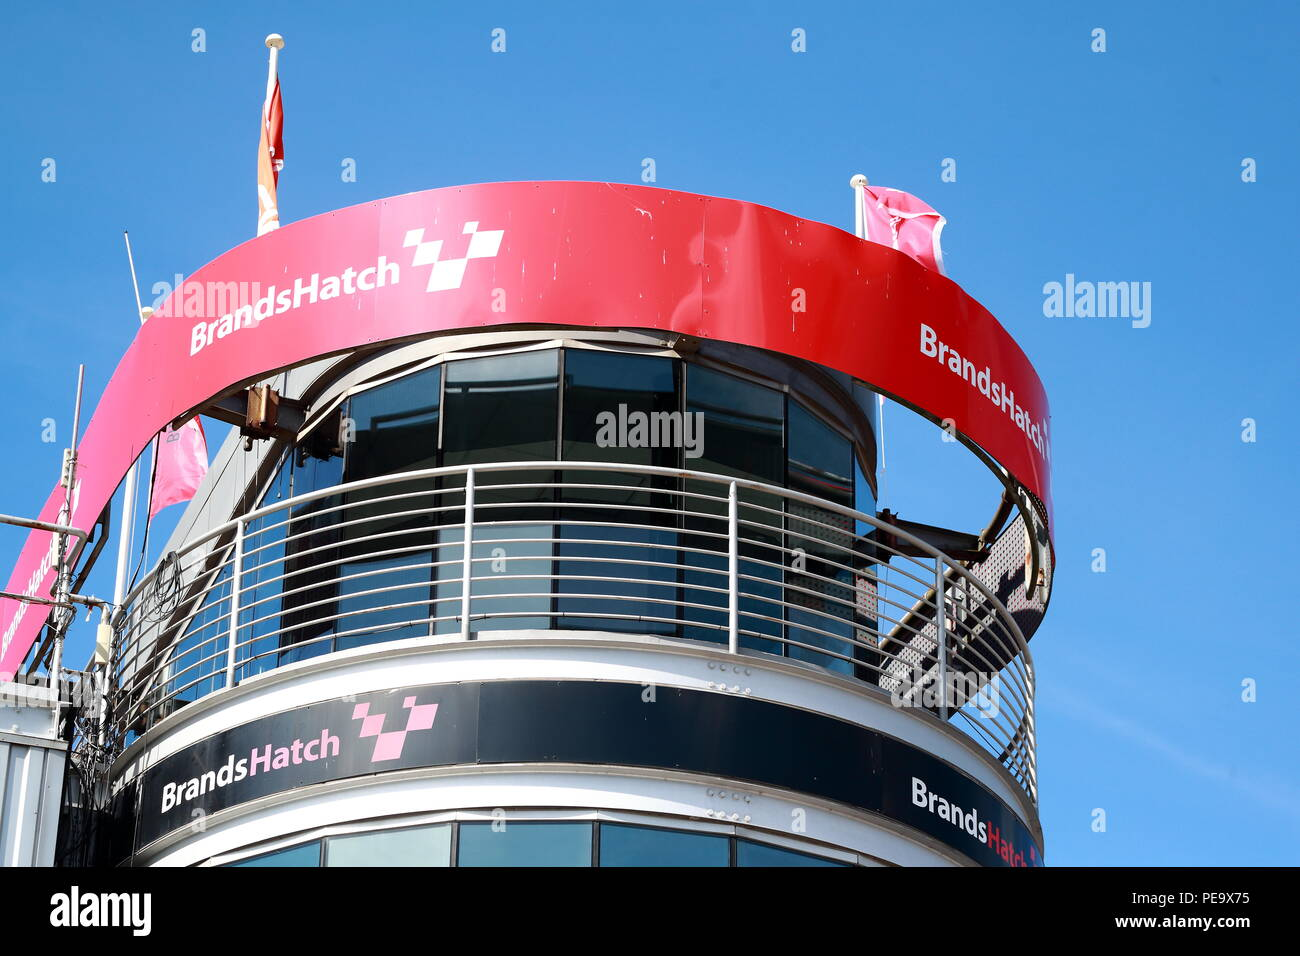 The control tower at Brands Hatch Circuit, UK - Stock Image